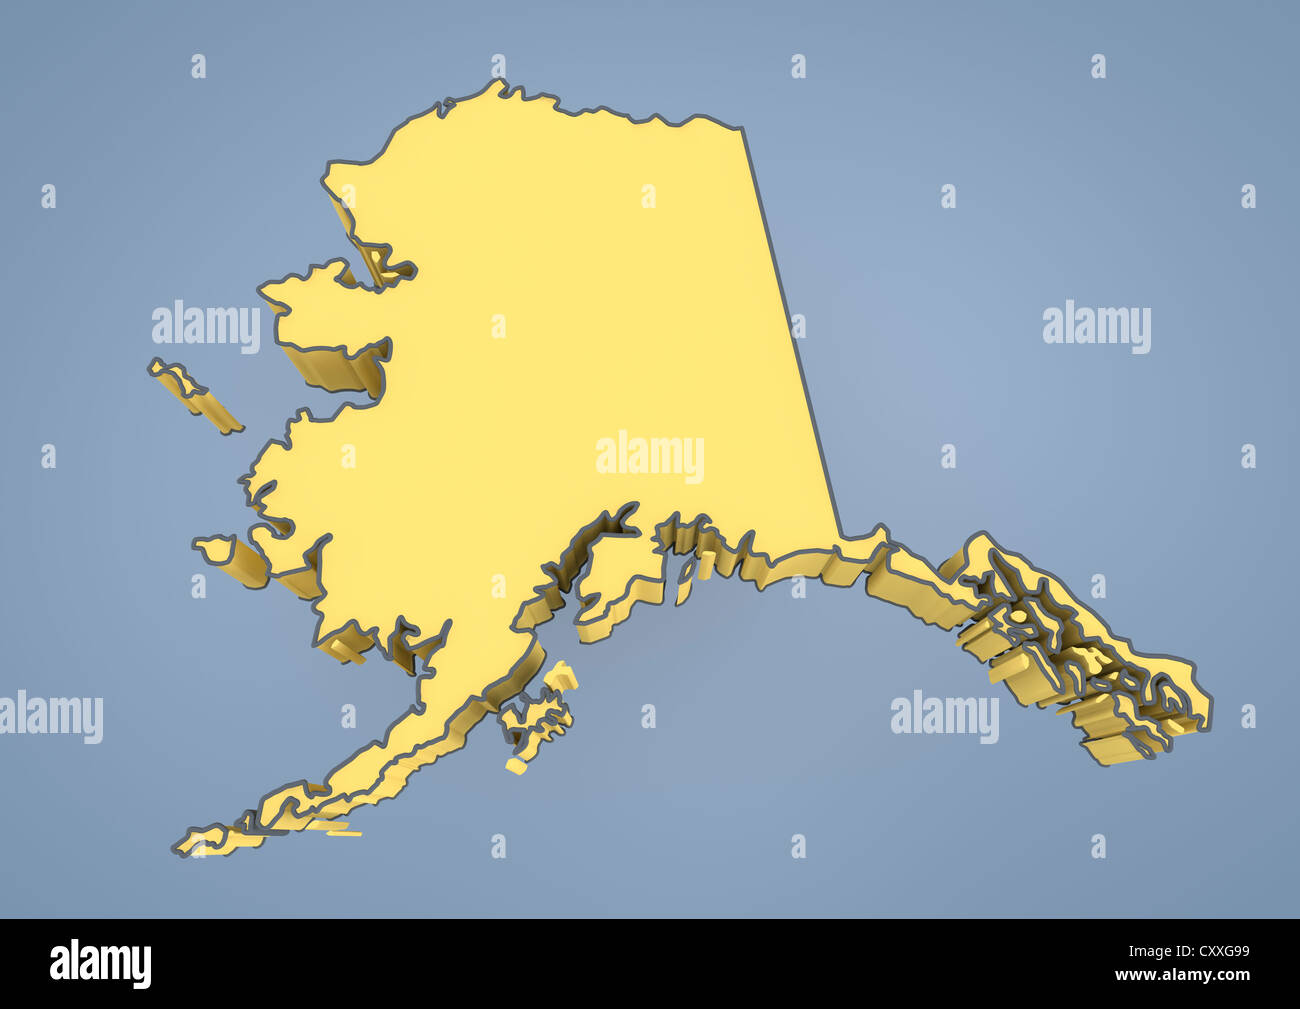 Map Of Alaska AK USA United States Of America Contour D - 3d map usa states